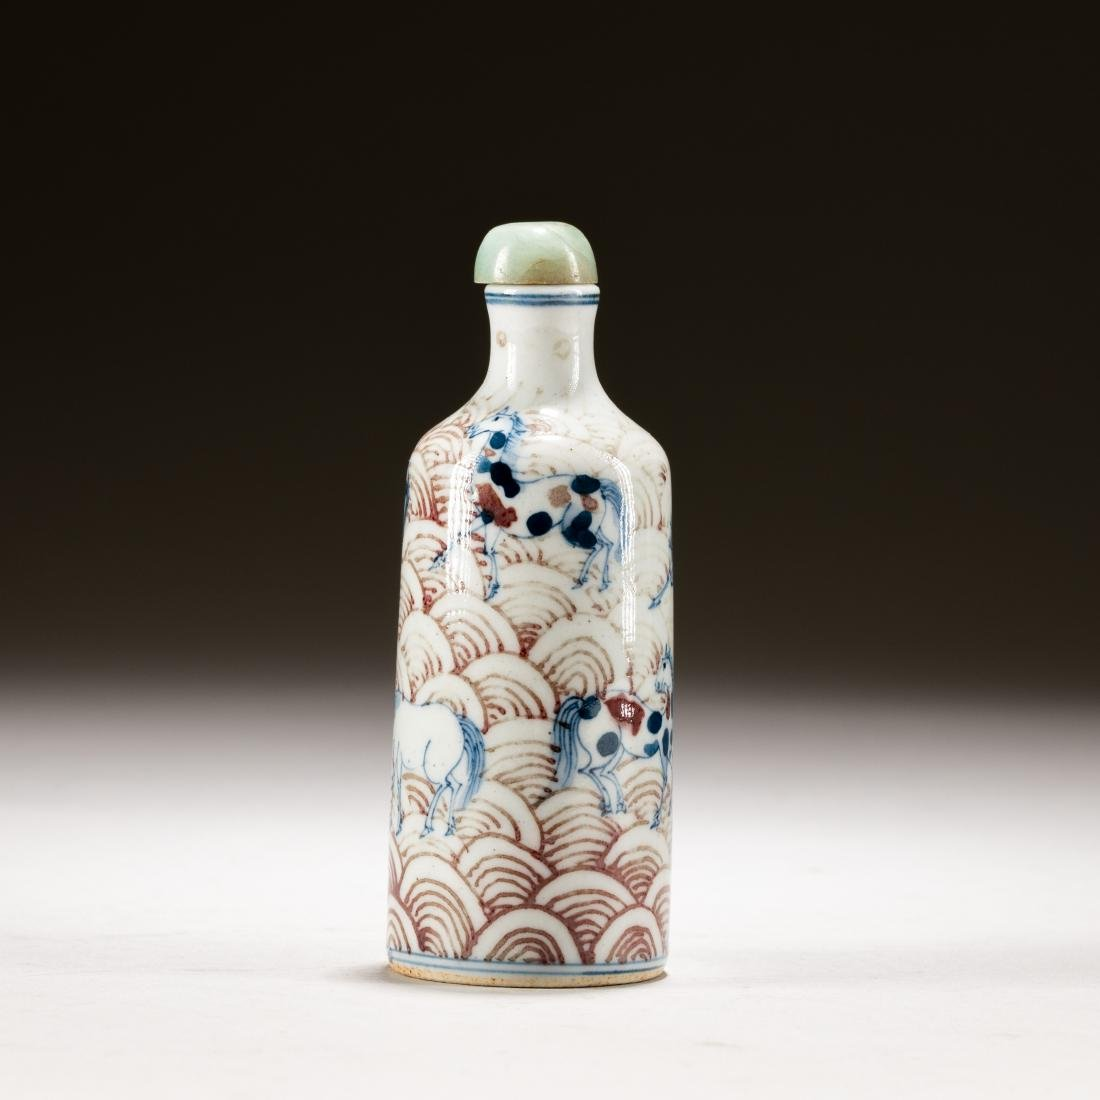 Chinese Antique Blue White And Red Snuff Bottle - 4